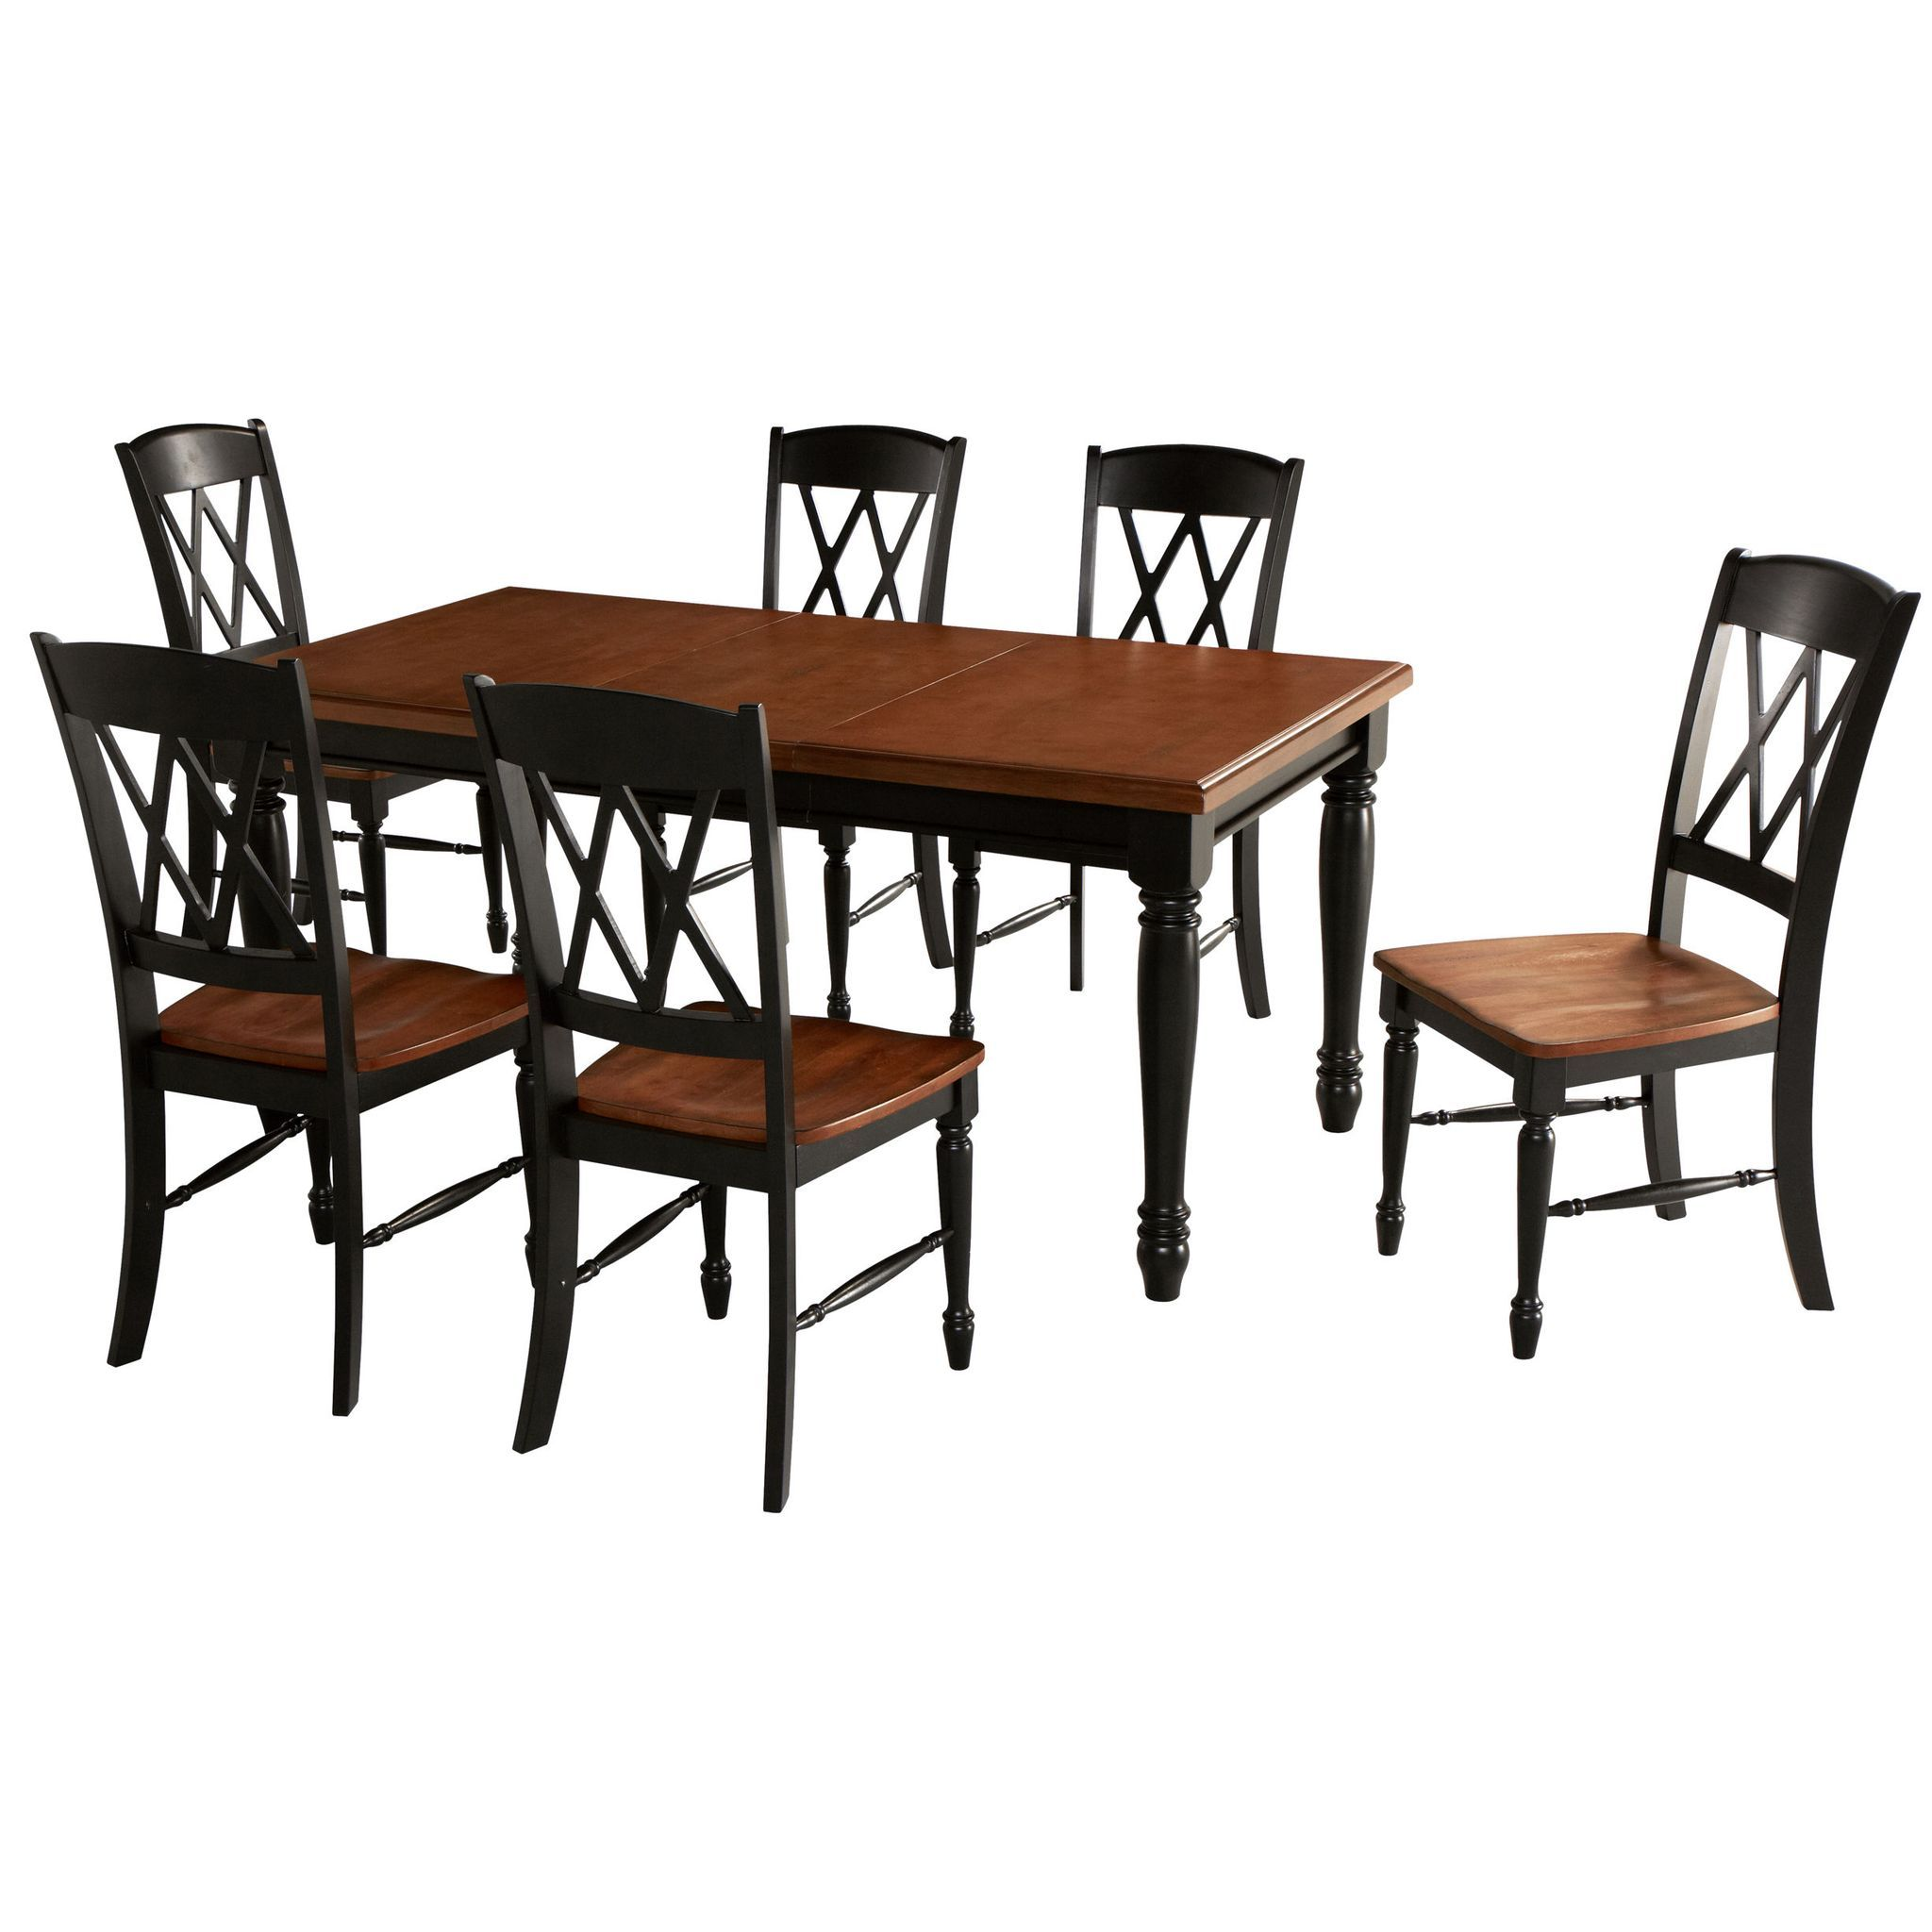 7 Piece Dining Set In Black And Oak Finish Dhp Worldwide Outlet